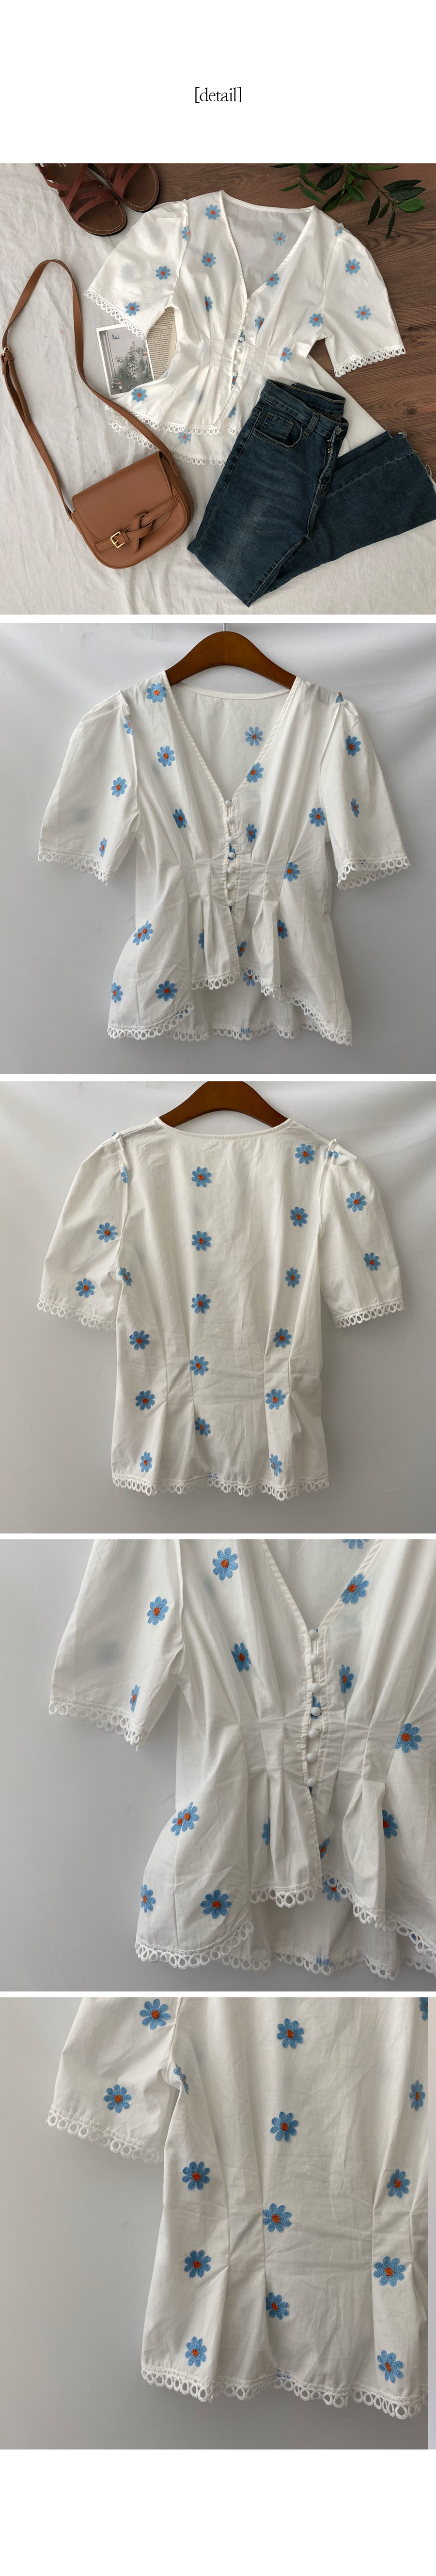 Blue flower embroidered blouse